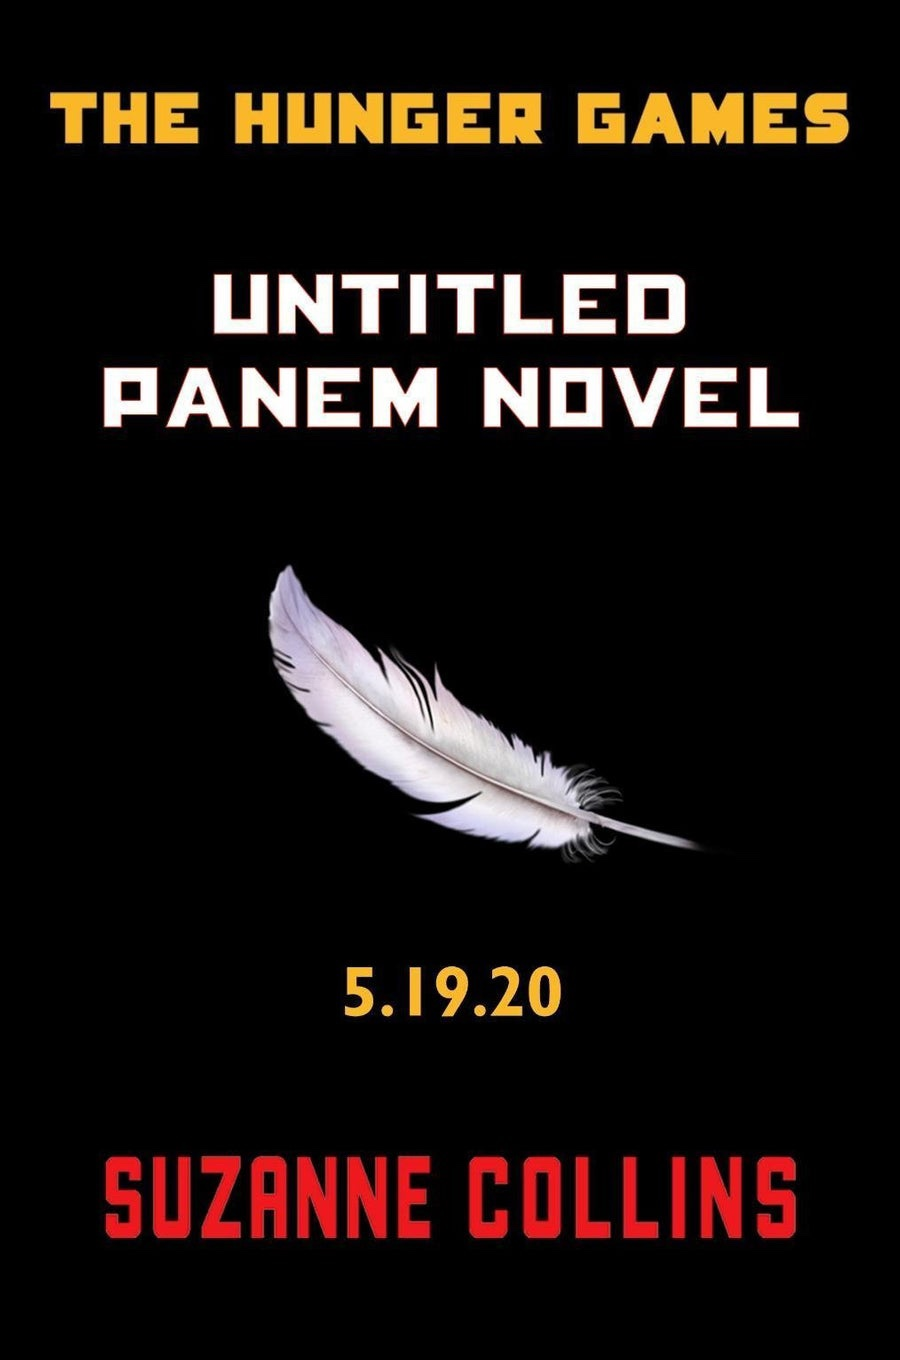 A Prequel for The Hunger Games is in the Works